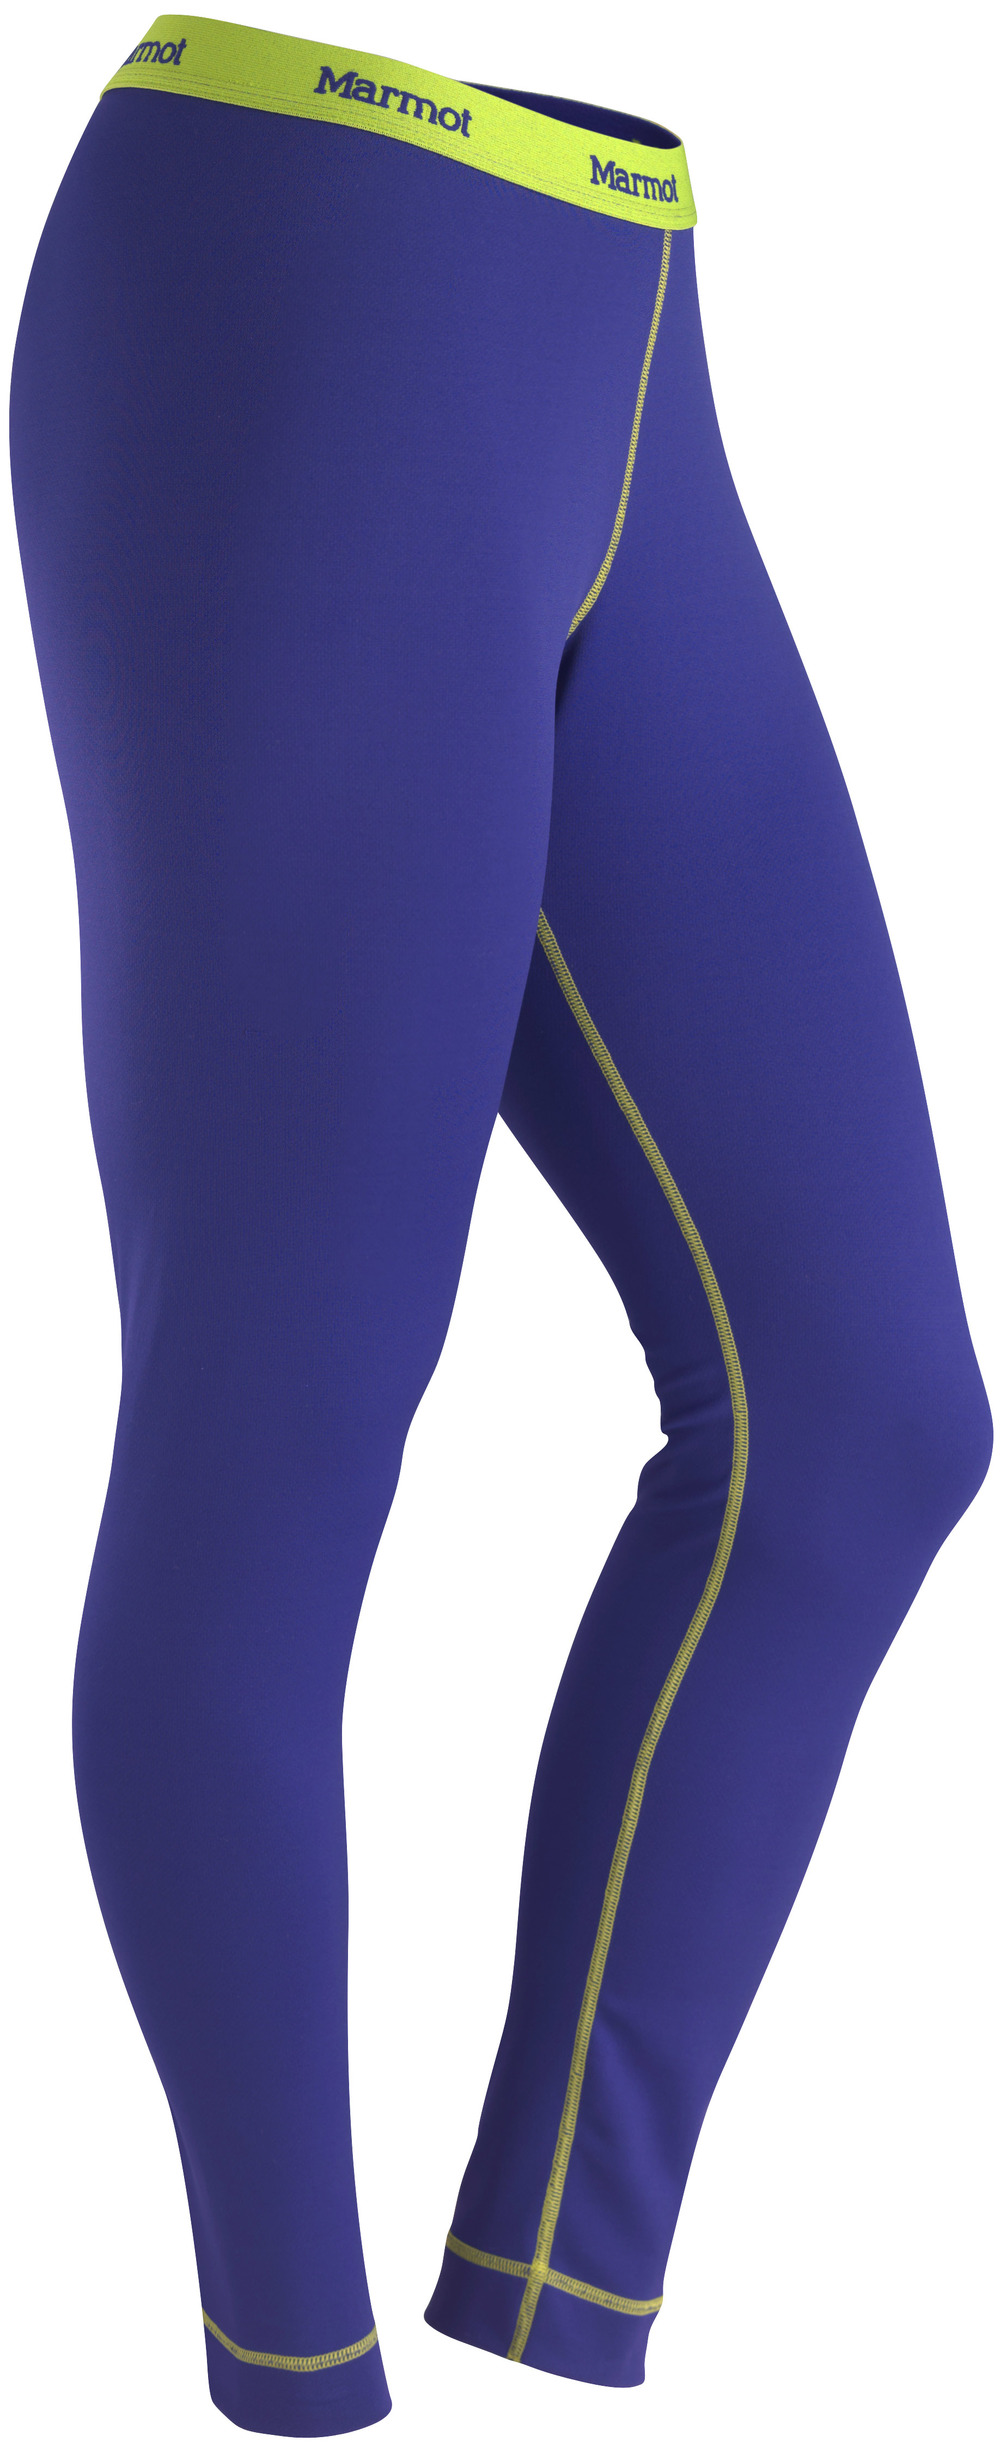 A12840_6705_thermalclimepro_tight.jpg